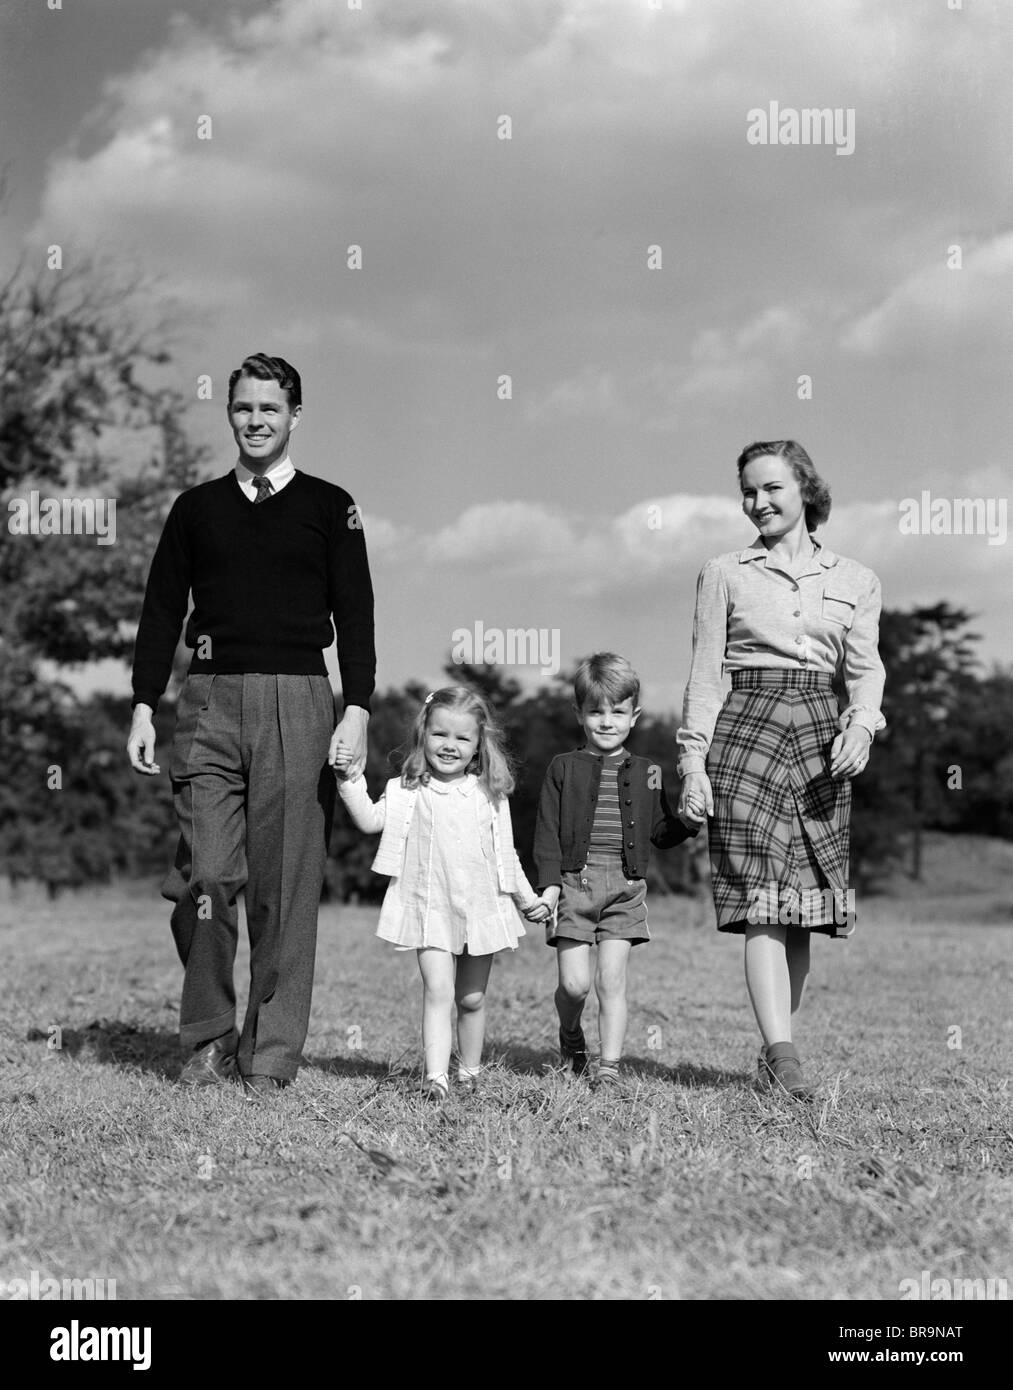 1940s FAMILY HOLDING HANDS WALKING ON GRASS - Stock Image